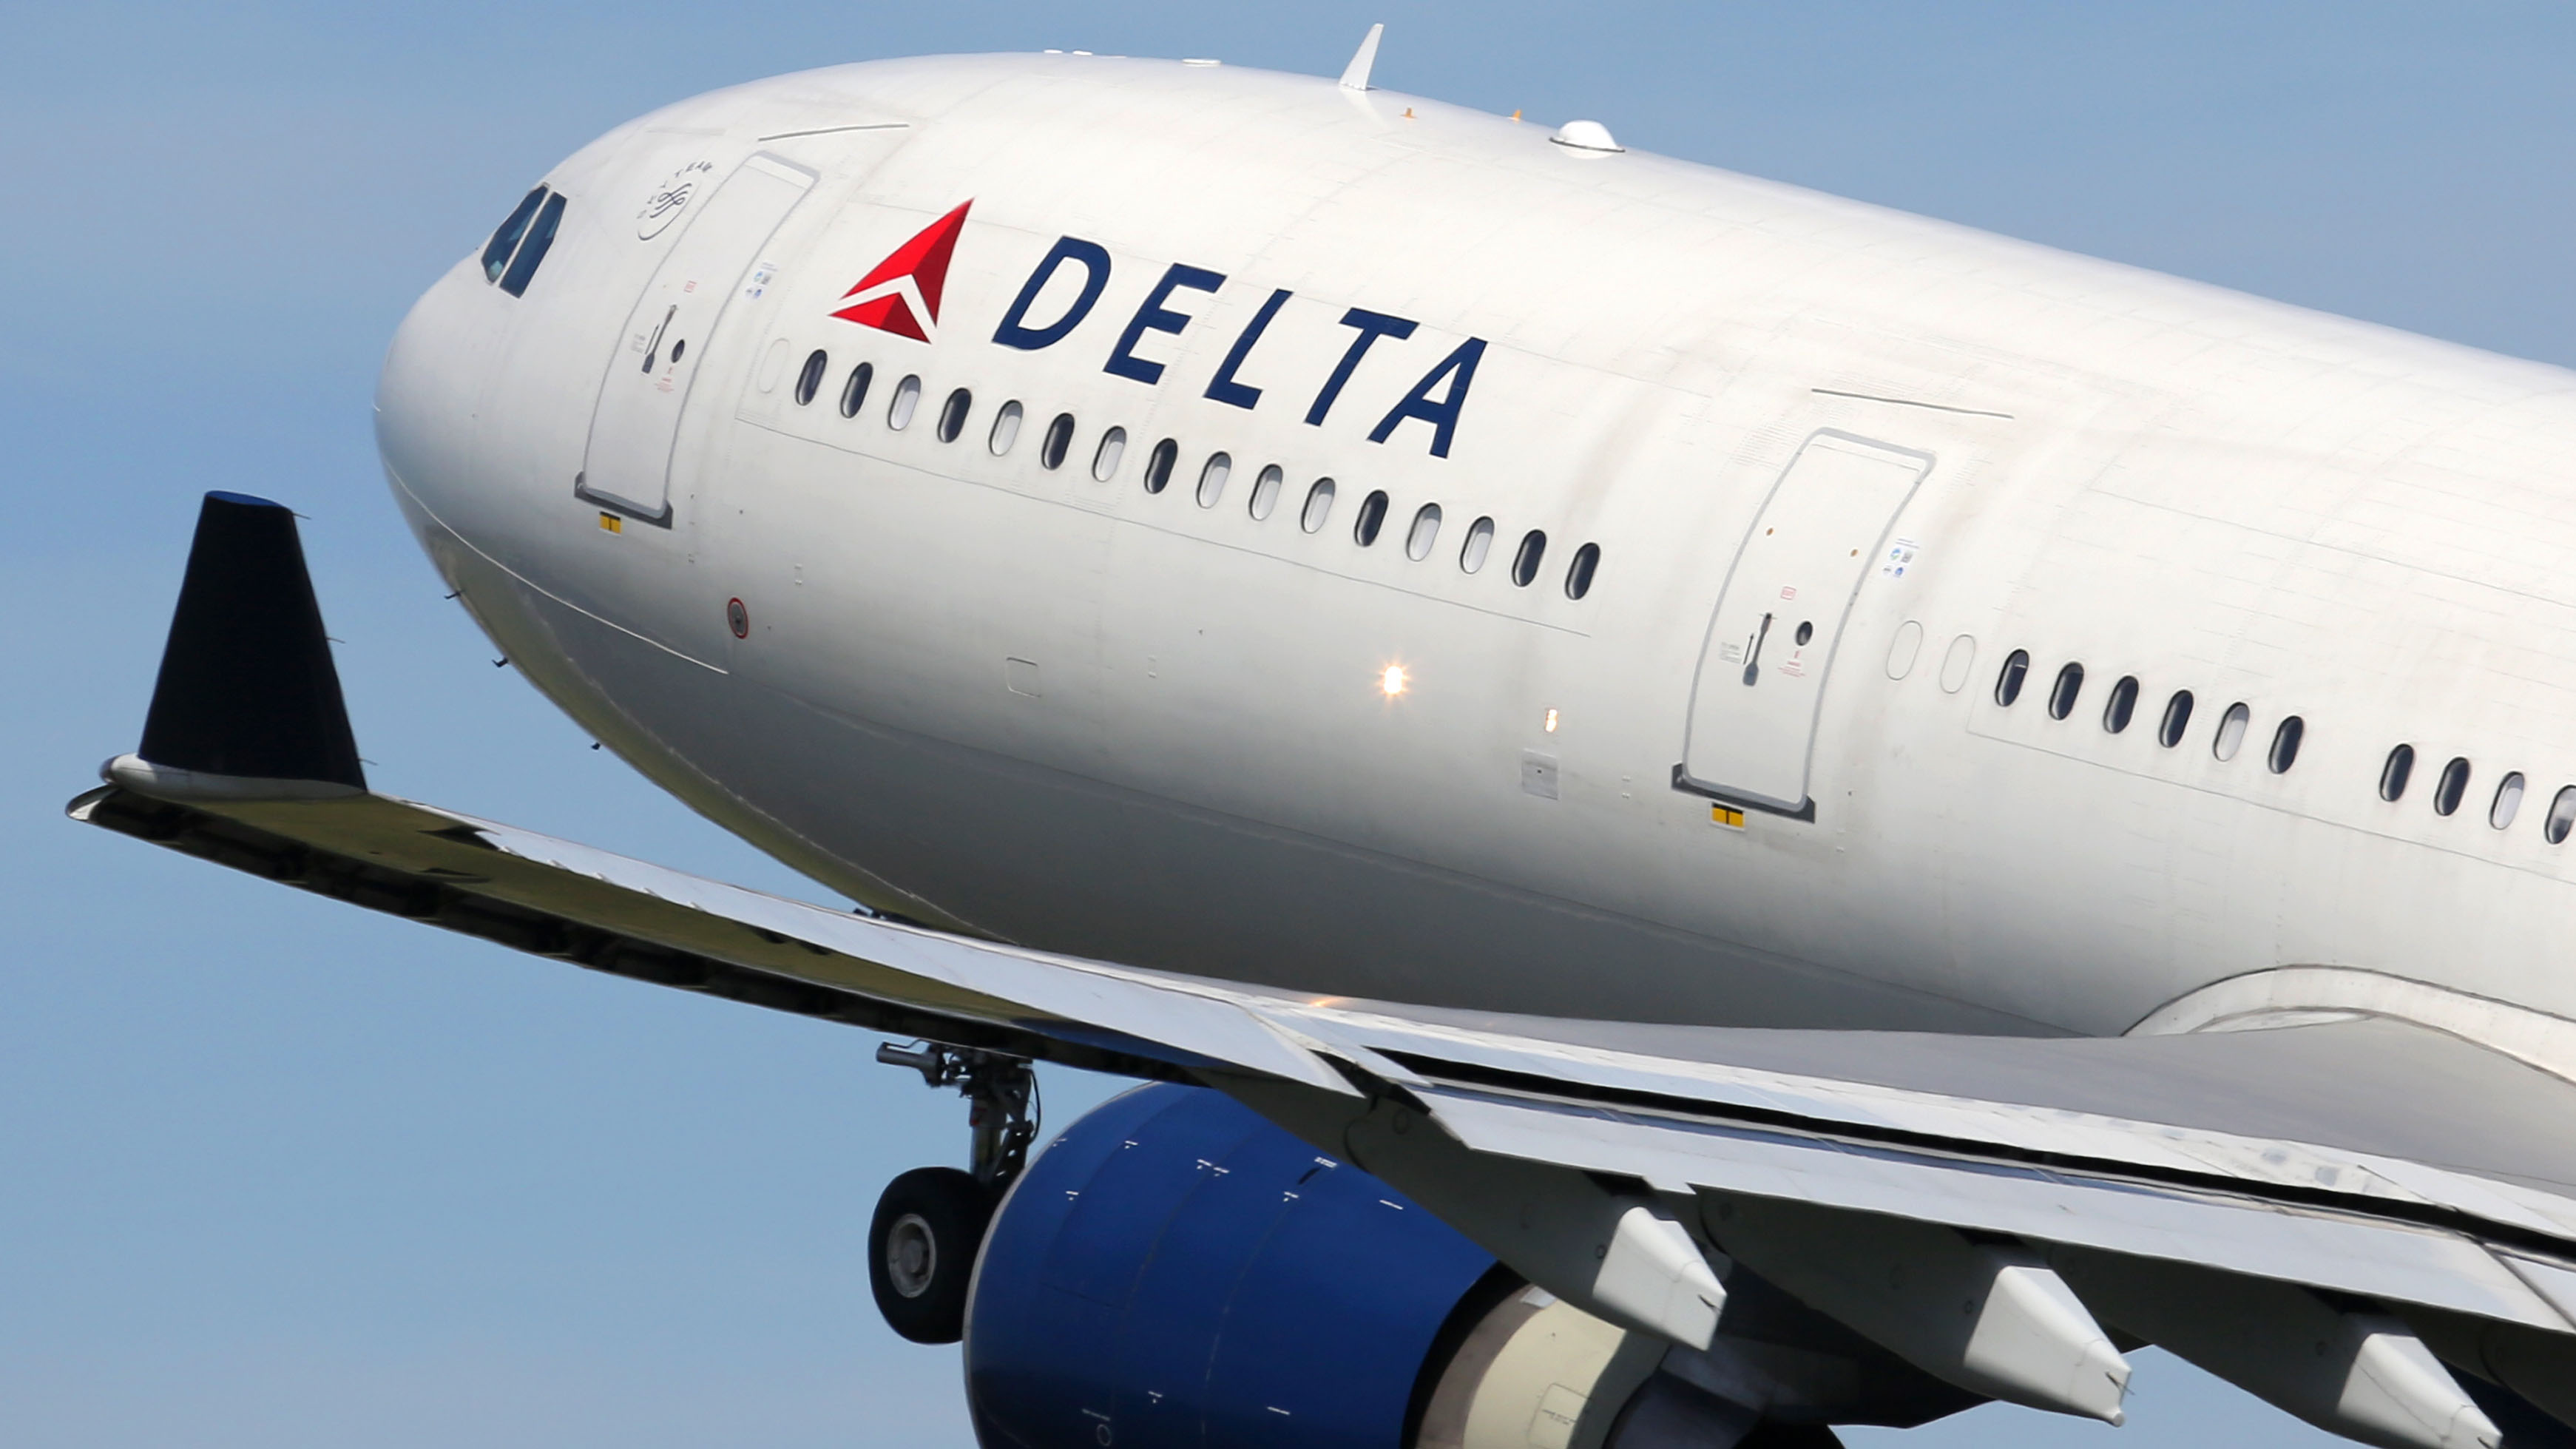 Delta passenger slaps flight attendant during argument over mask policy: report - fox